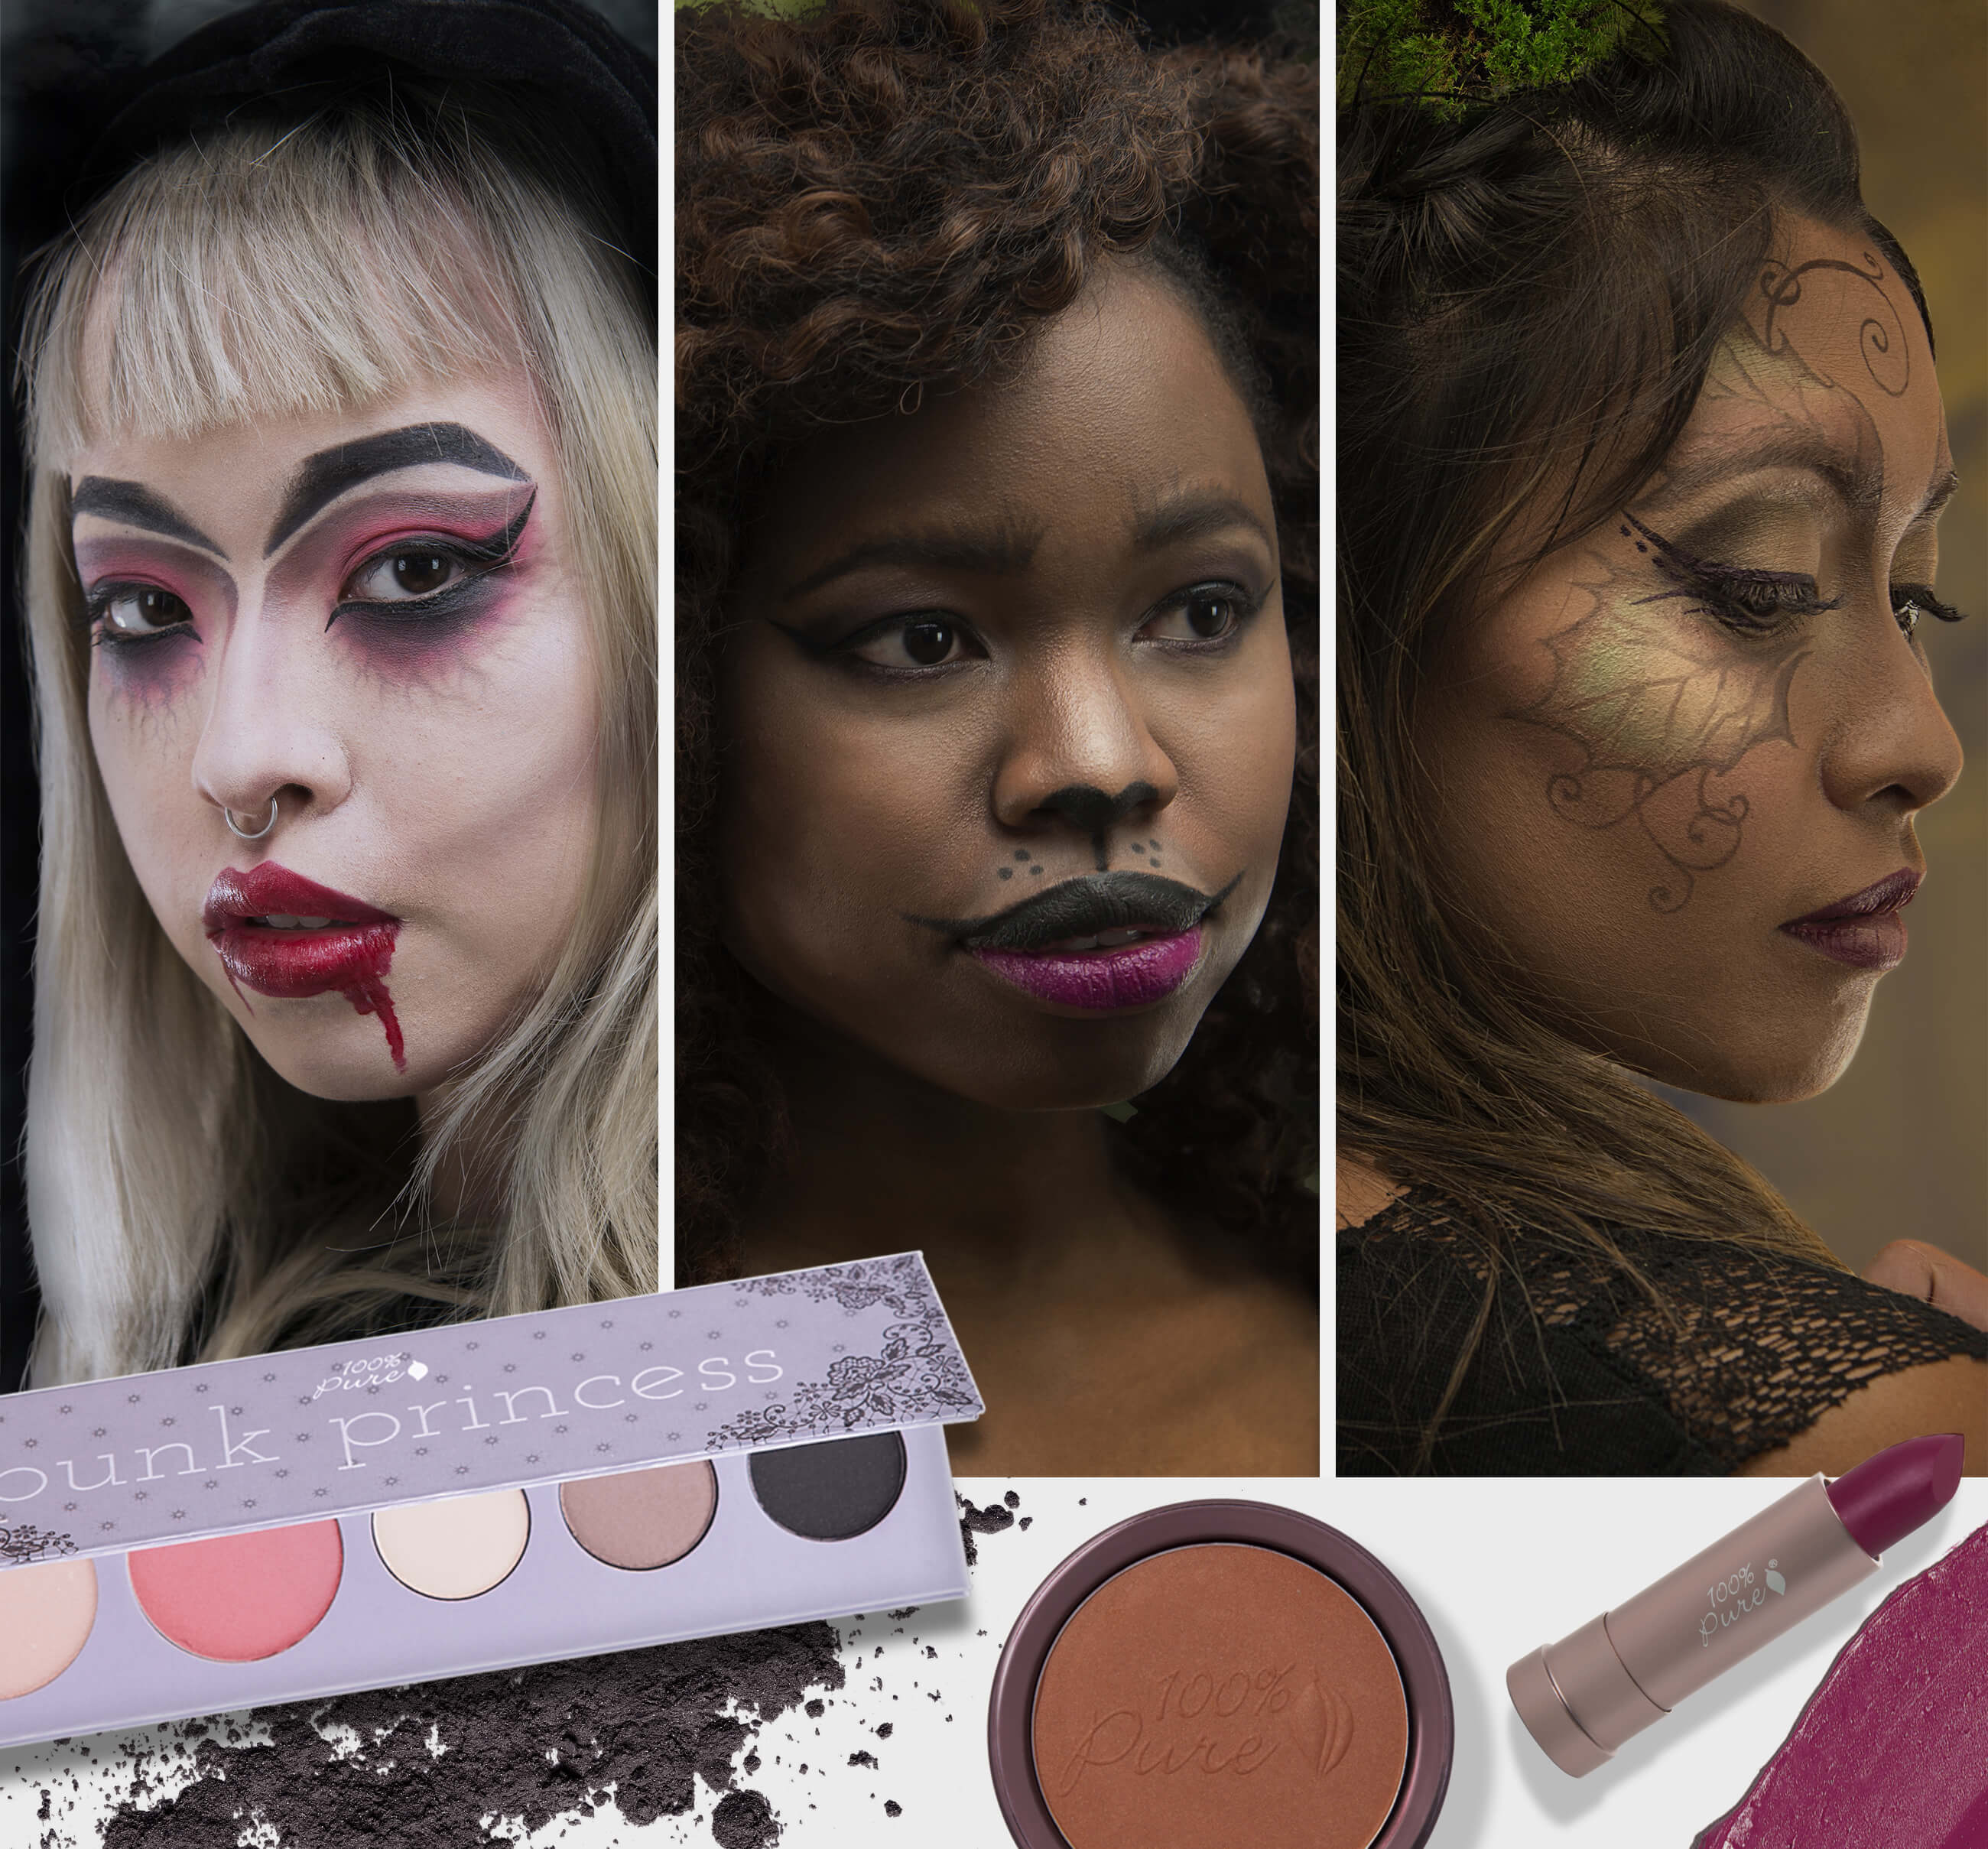 Careful: Your Halloween Makeup Could Be Toxic